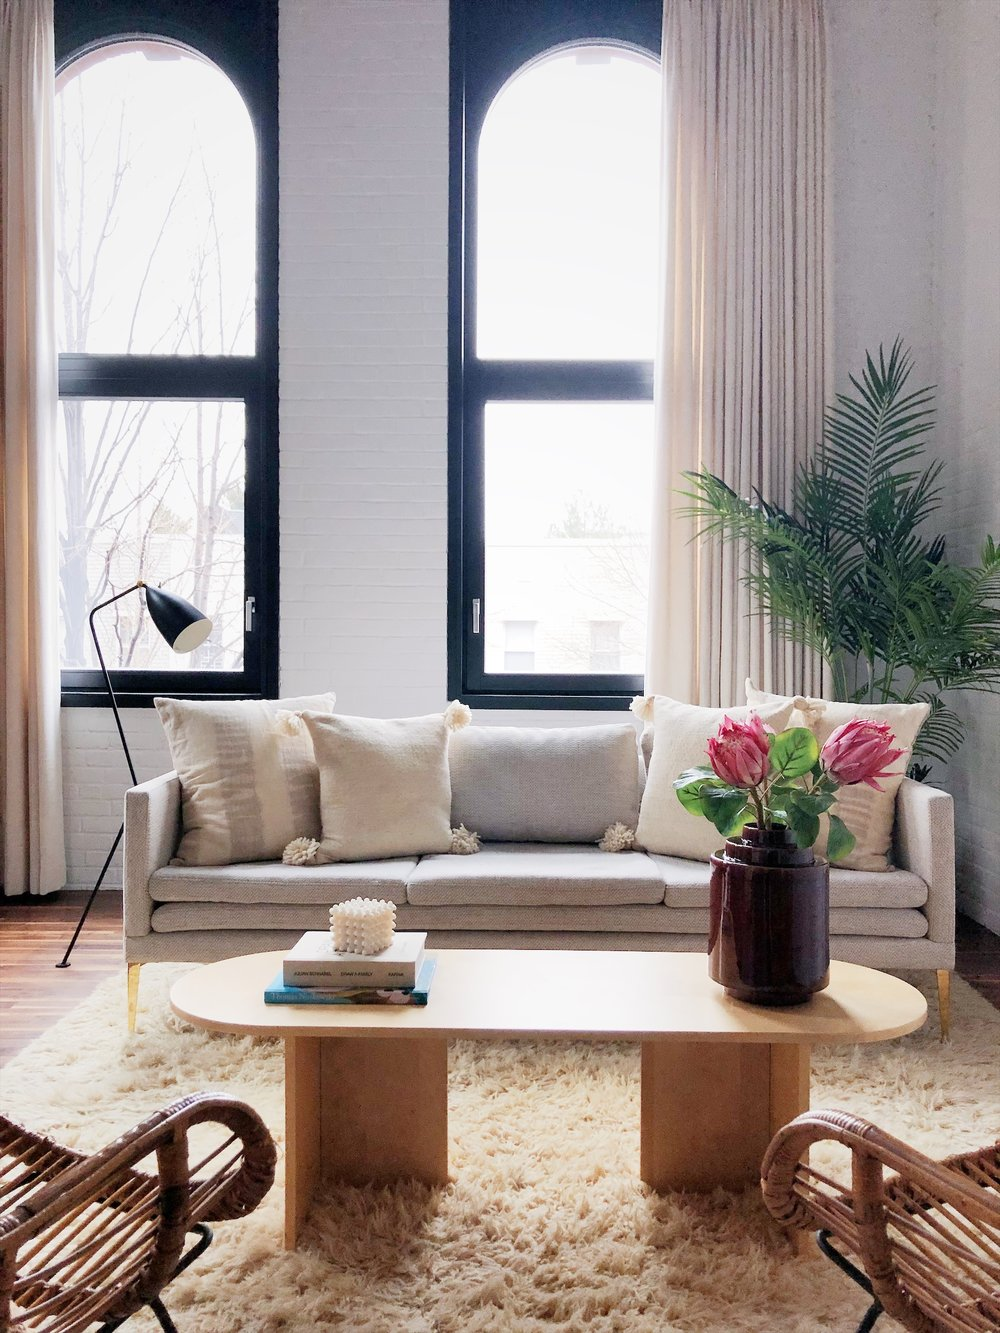 Hovey Design - Staging NYC Brooklyn - 19.jpg